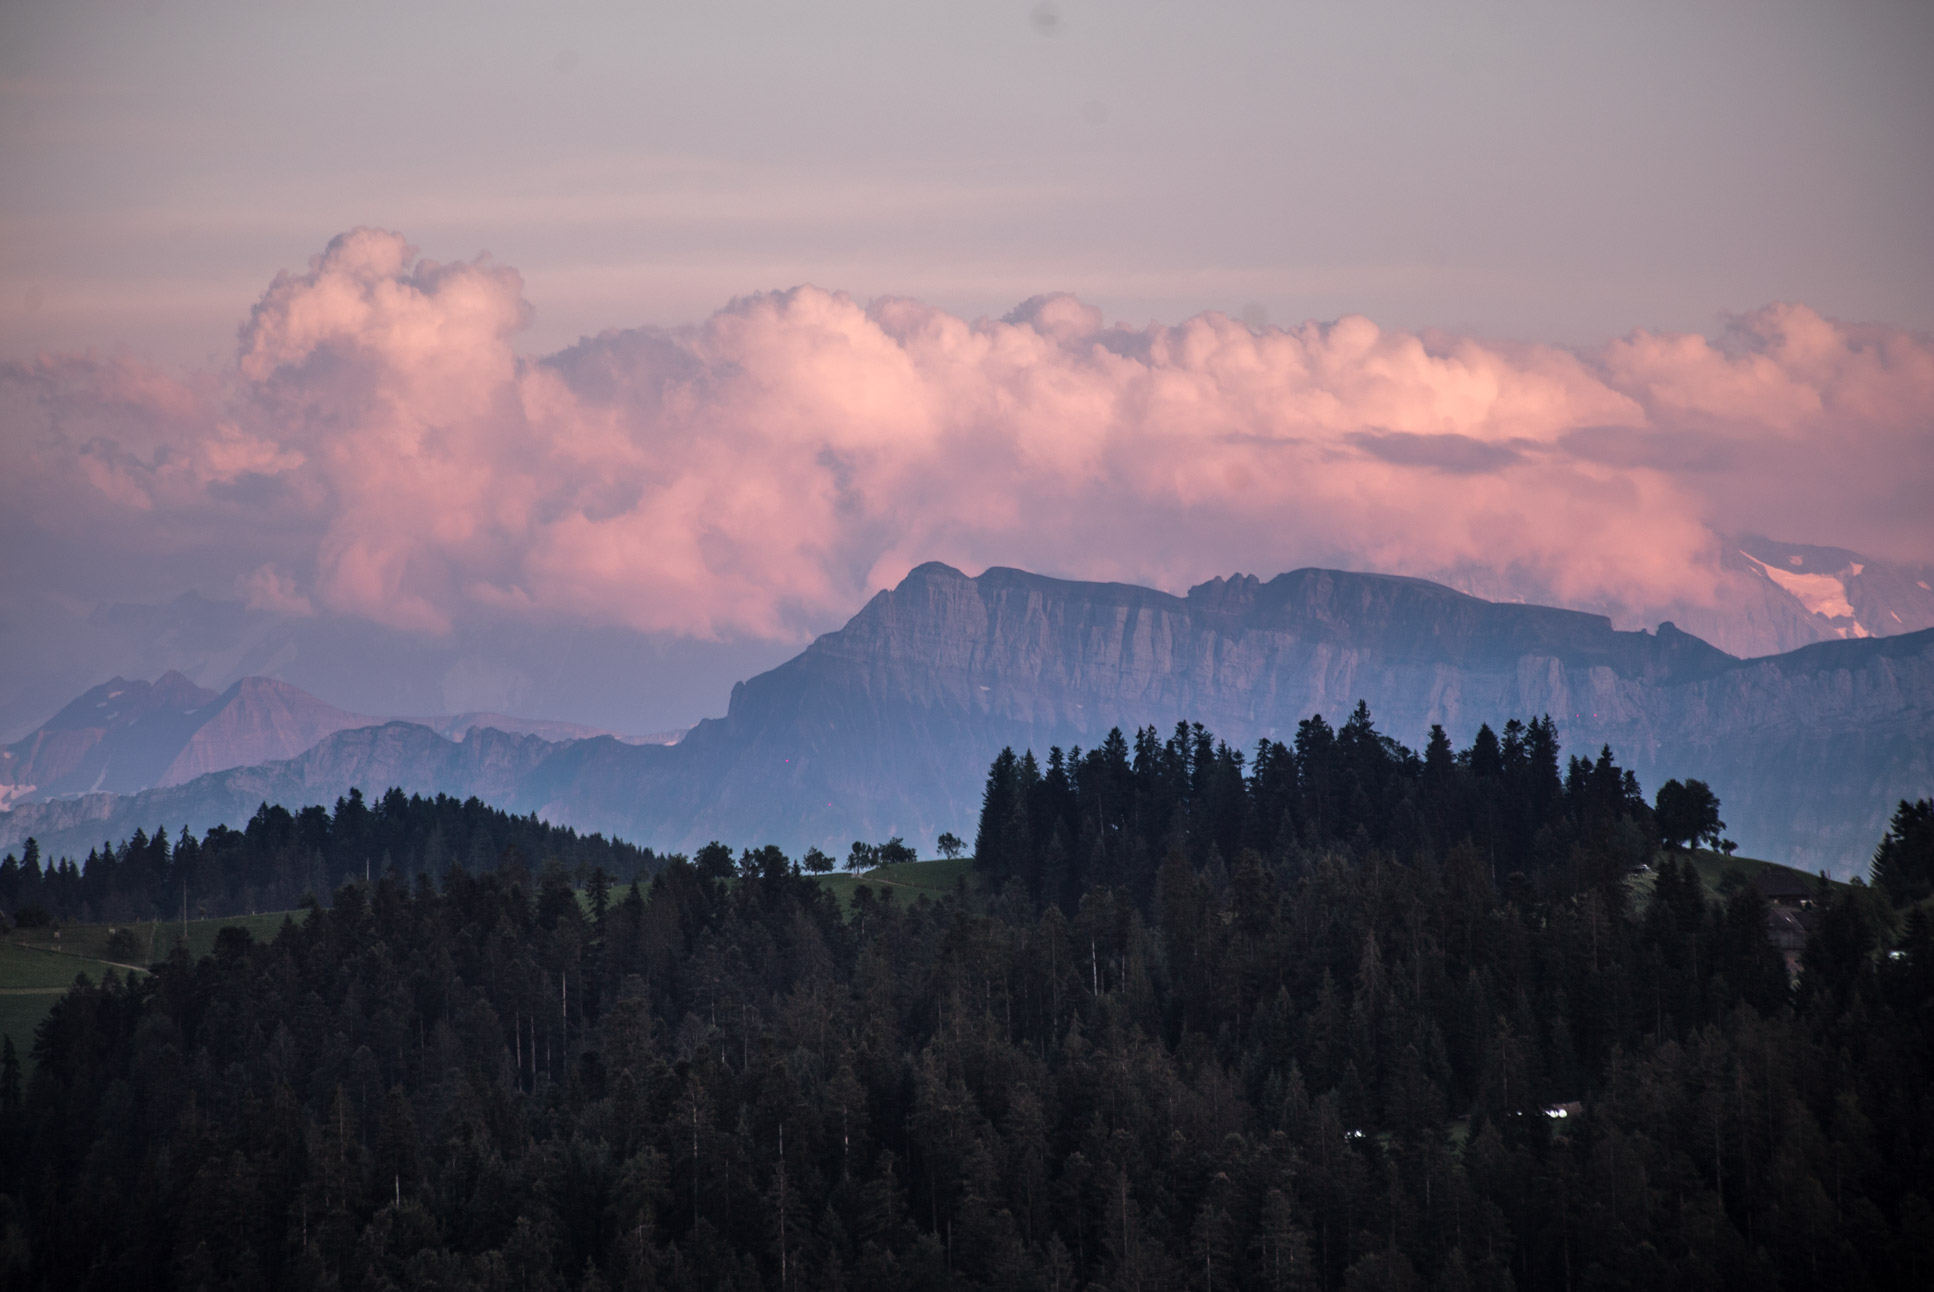 Photo by Pascal Sommer - The mountain visible is Schrattenfluh